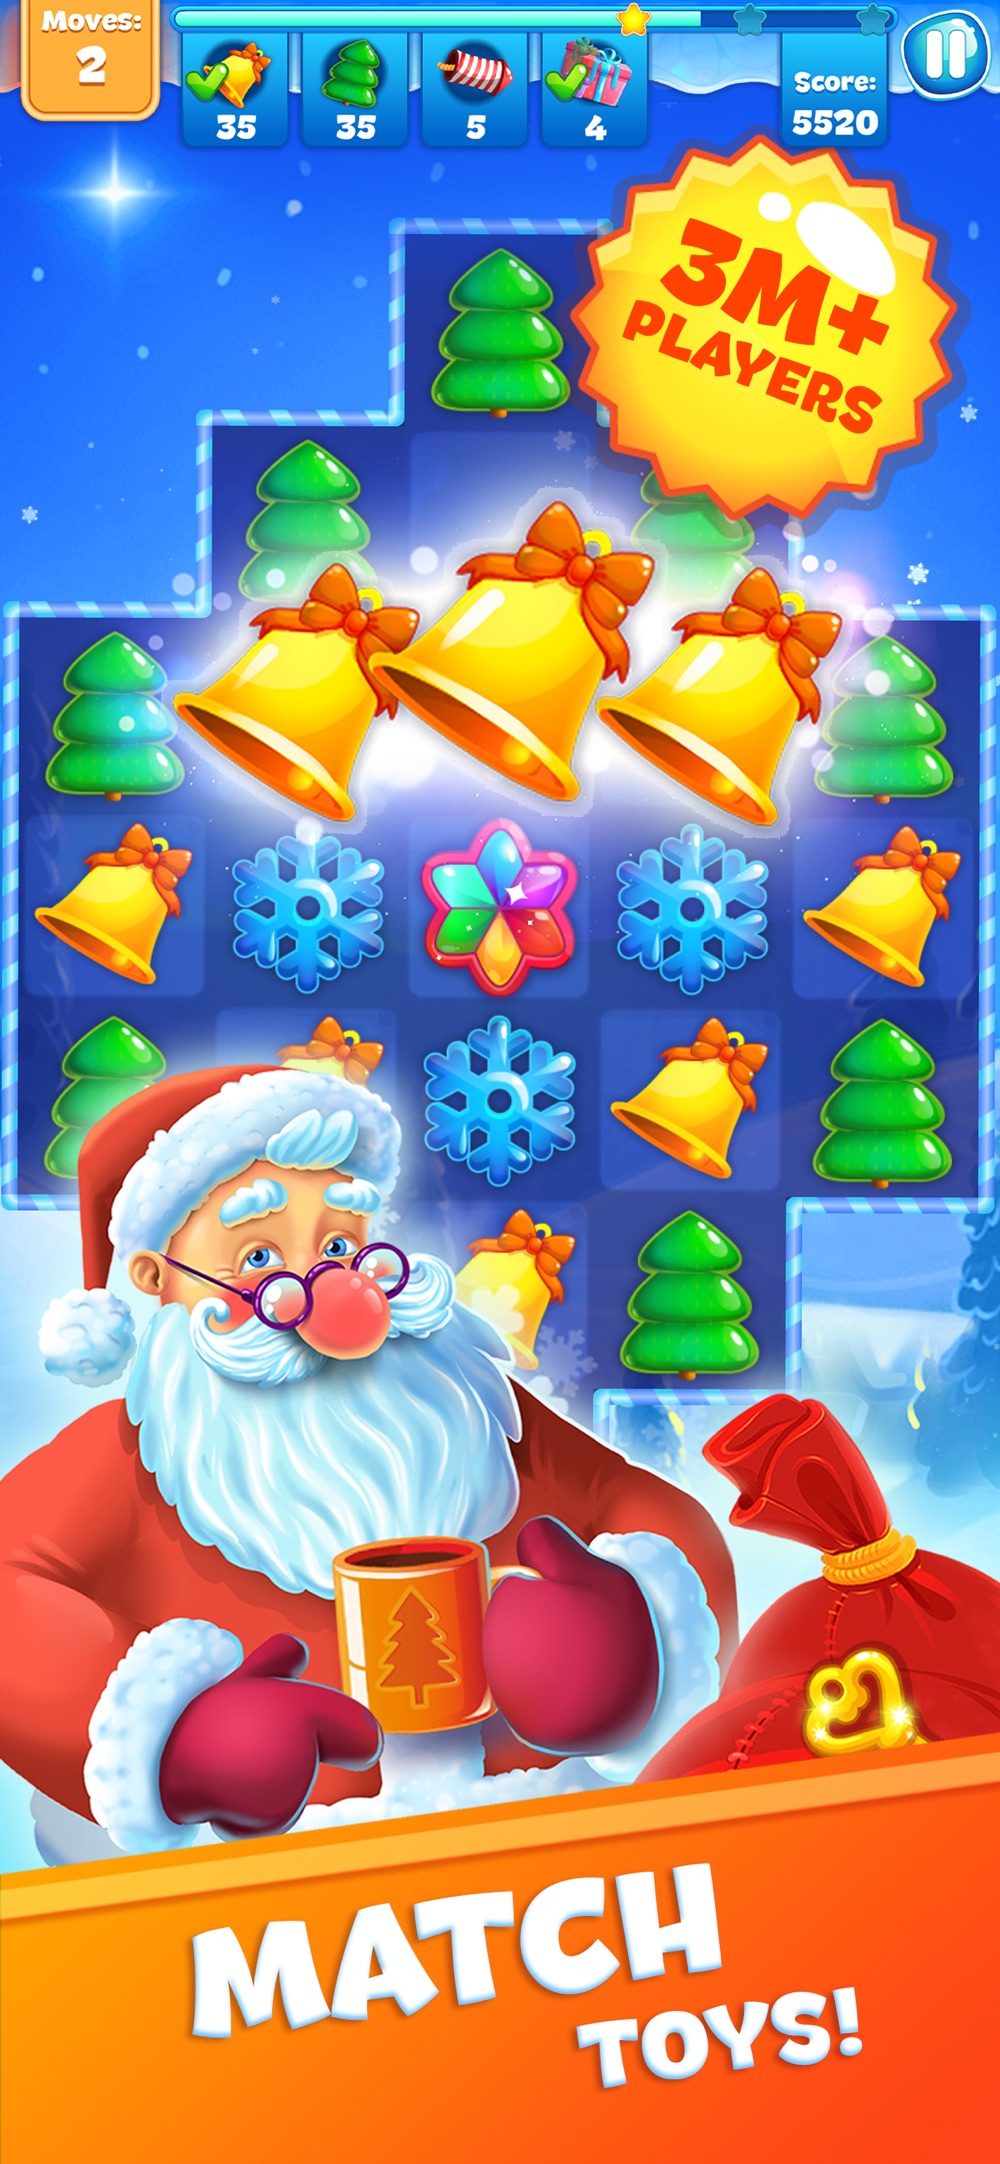 Christmas Sweeper 3 cheat codes